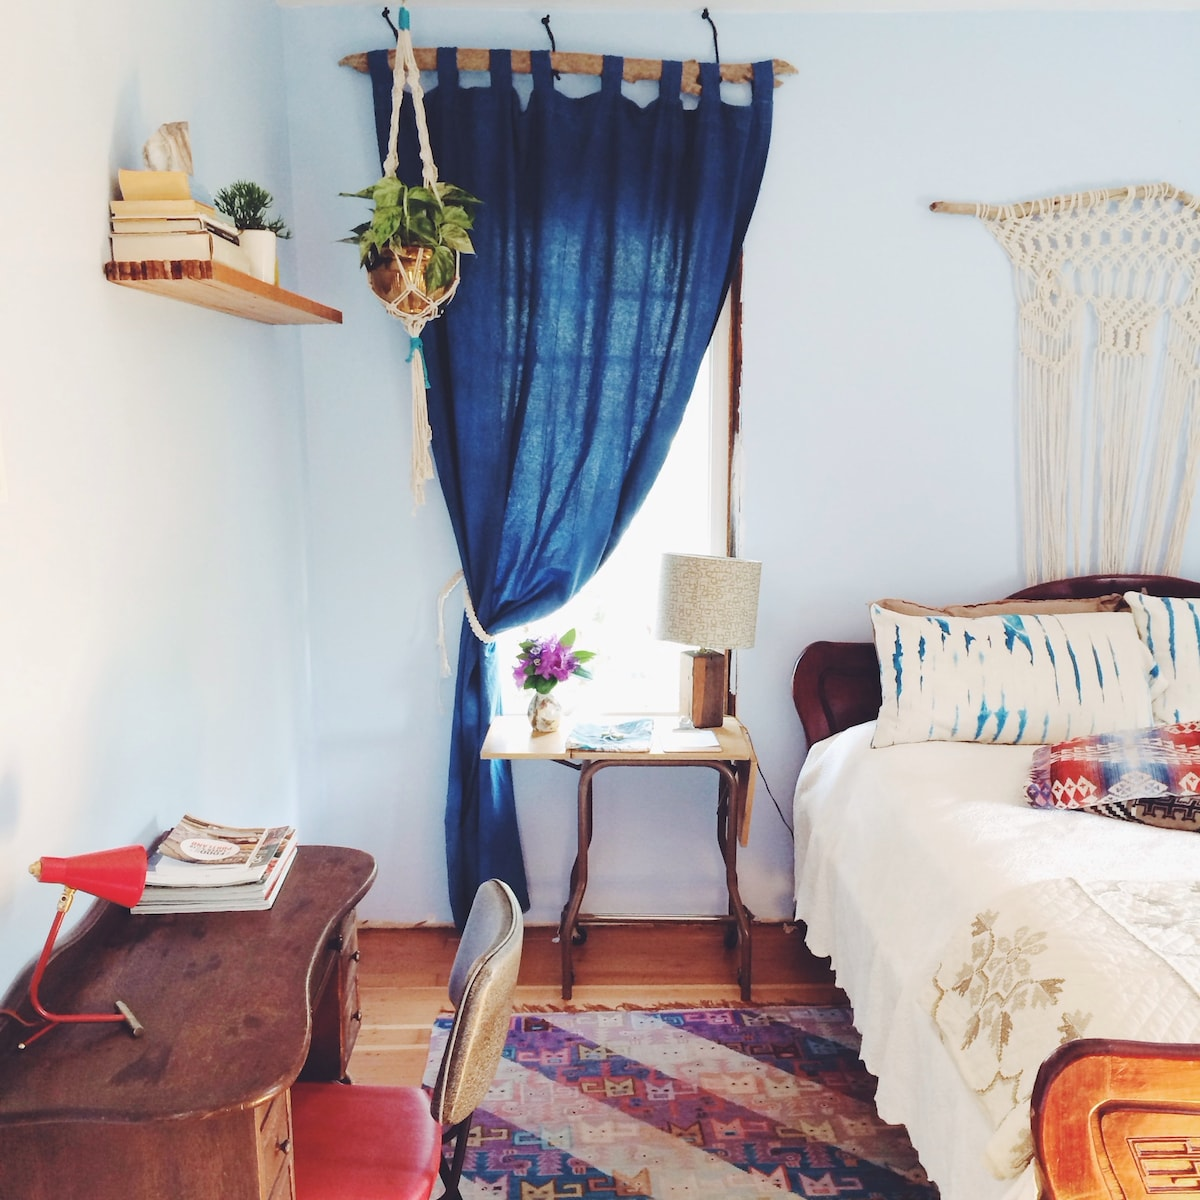 Your home away from home! We have added lots of special details to the room. Macramé made by Emily, textiles dyed by Adam. Pendleton towels. Also you get a gift of a topographical map tea towel as a thank you for choosing us.